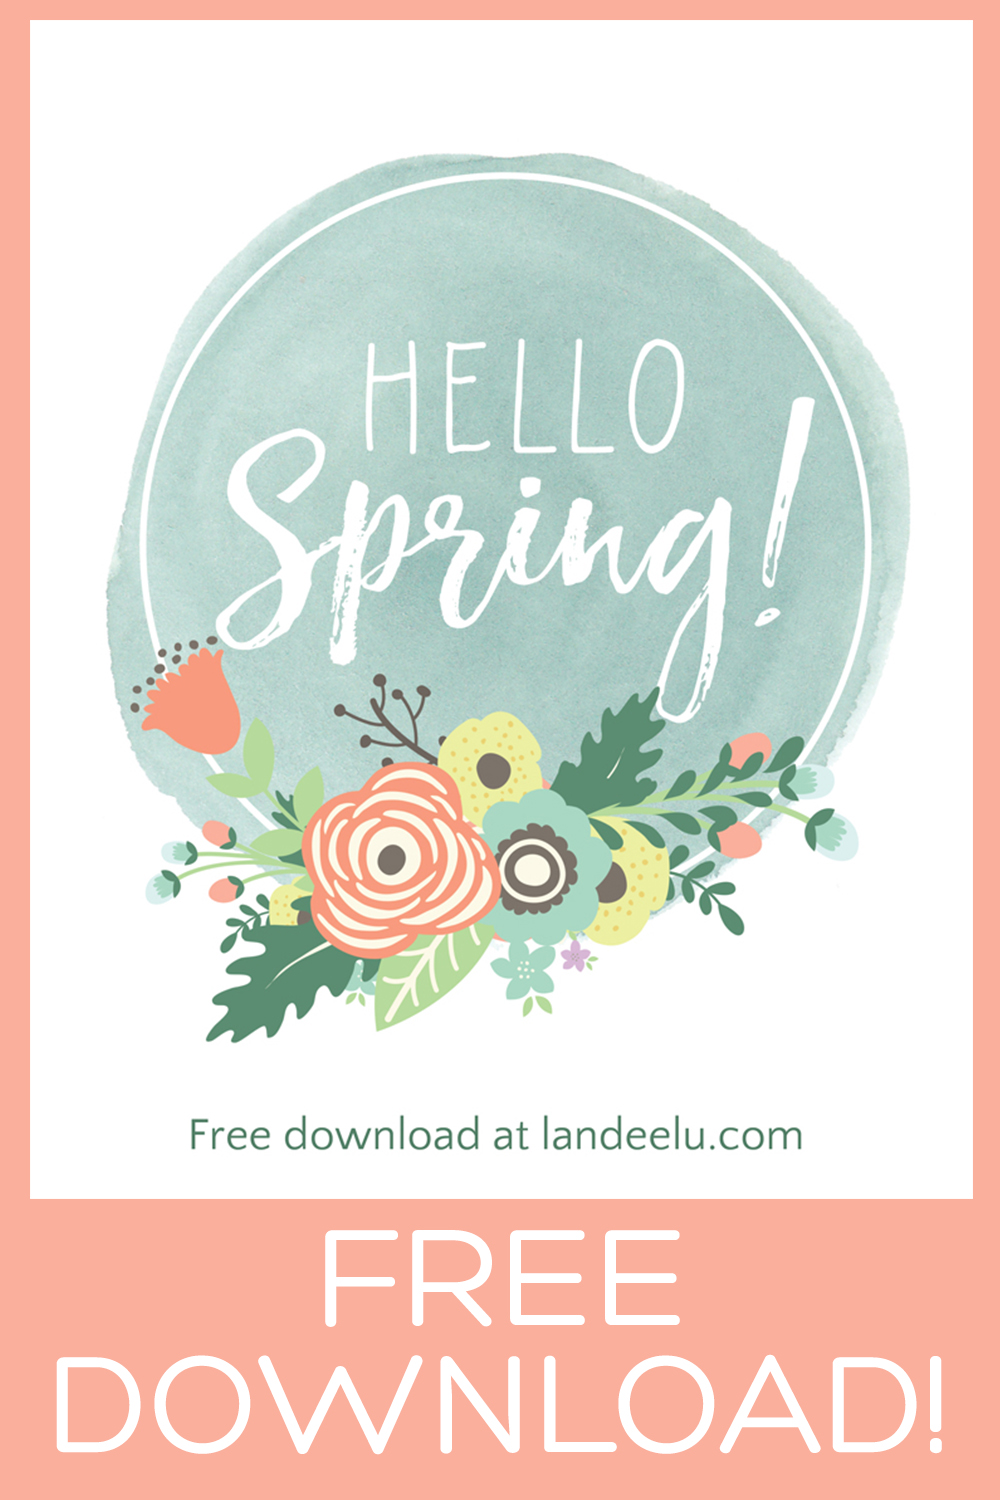 This is a darling free spring printable! I'm printing this and putting it in my entry! #springprintable #springprint #freeprintable #easterprint